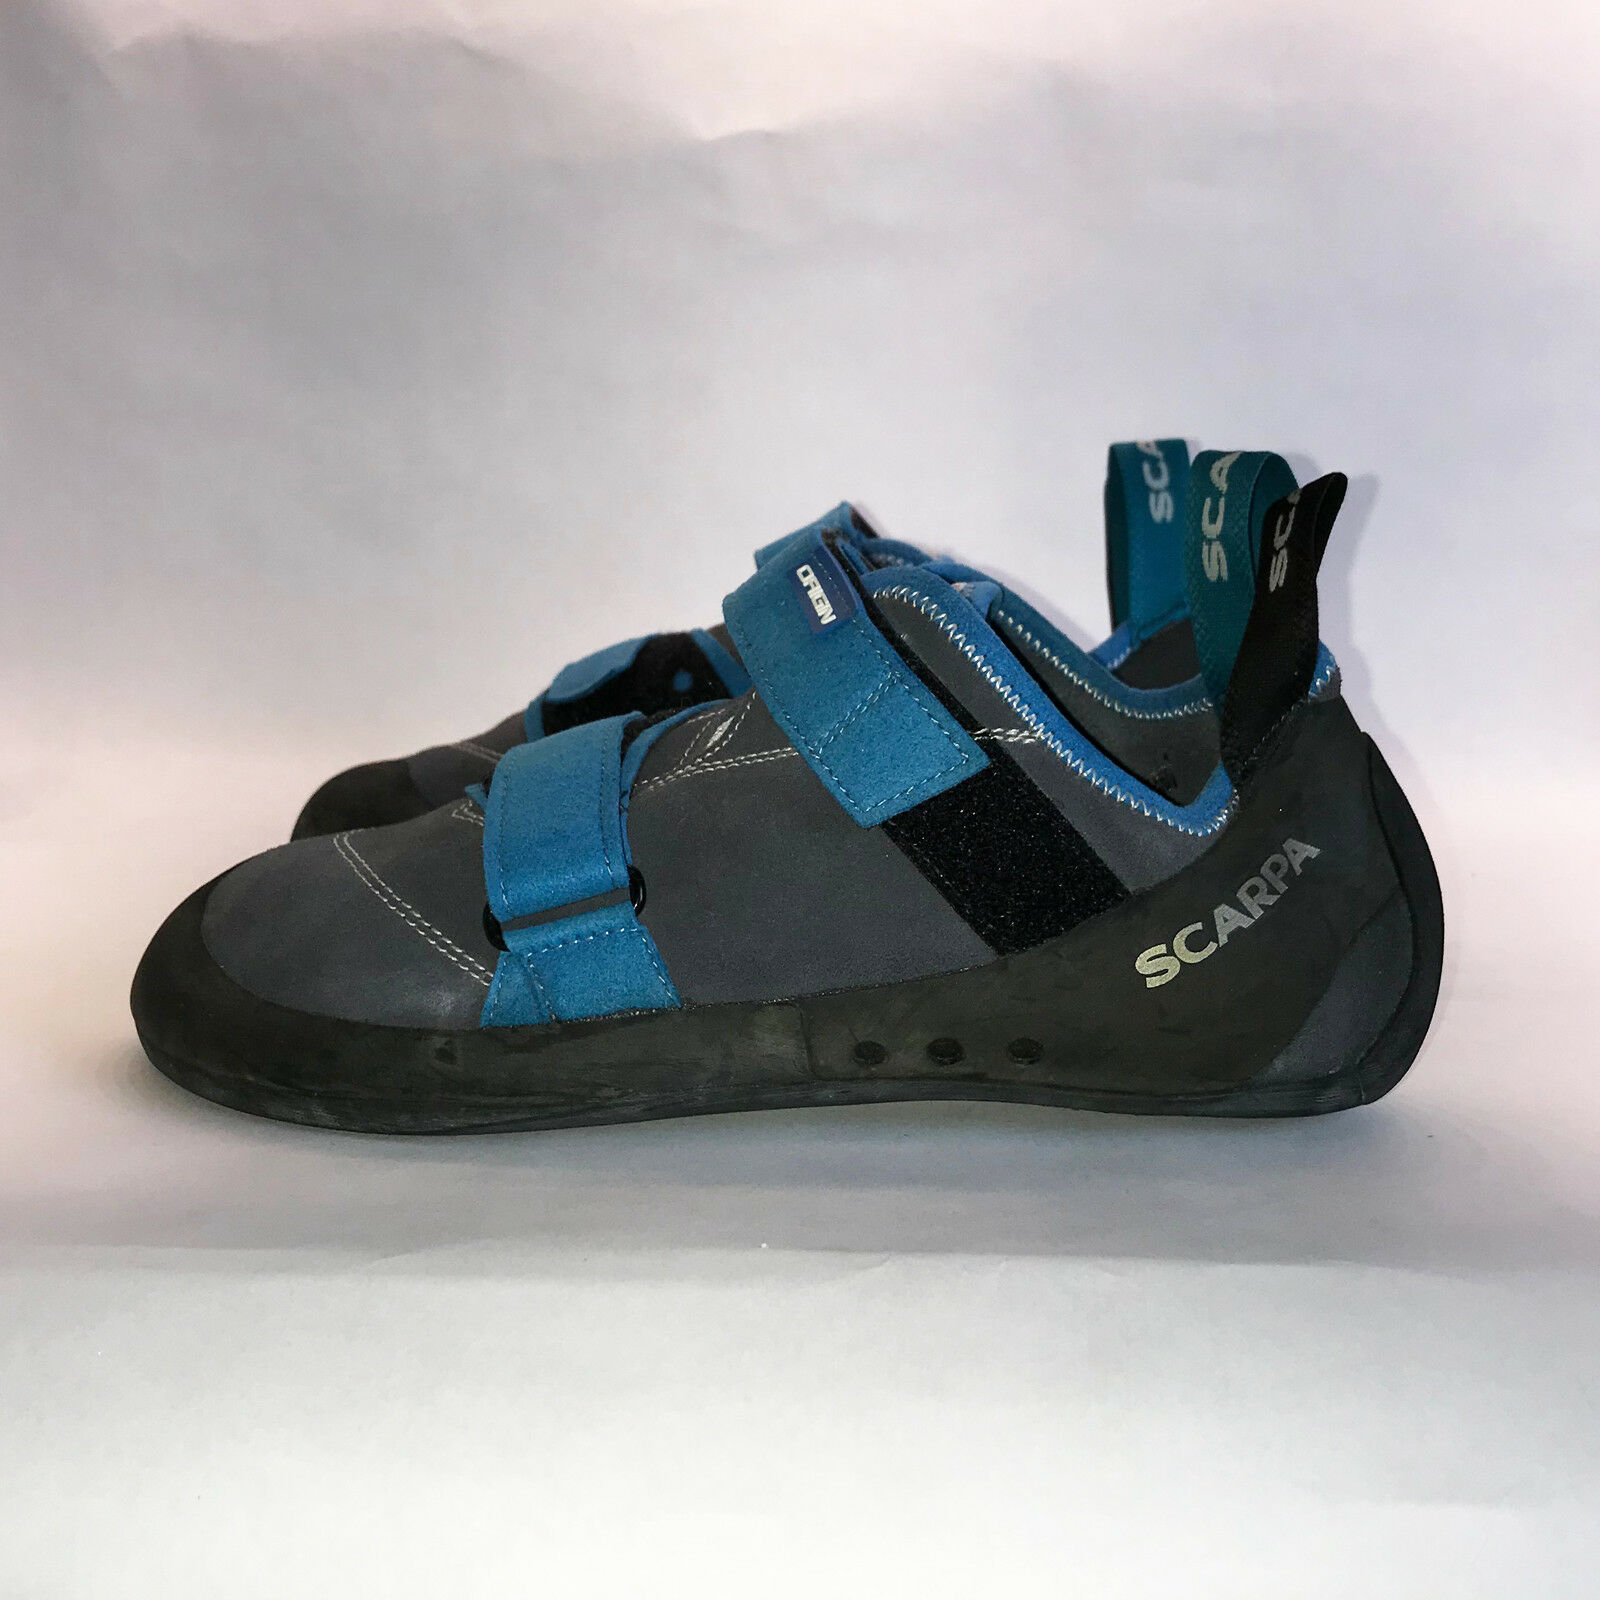 Scarpa Mens Origins Climbing Shoes Iron Grey US Size 10 Item 897408